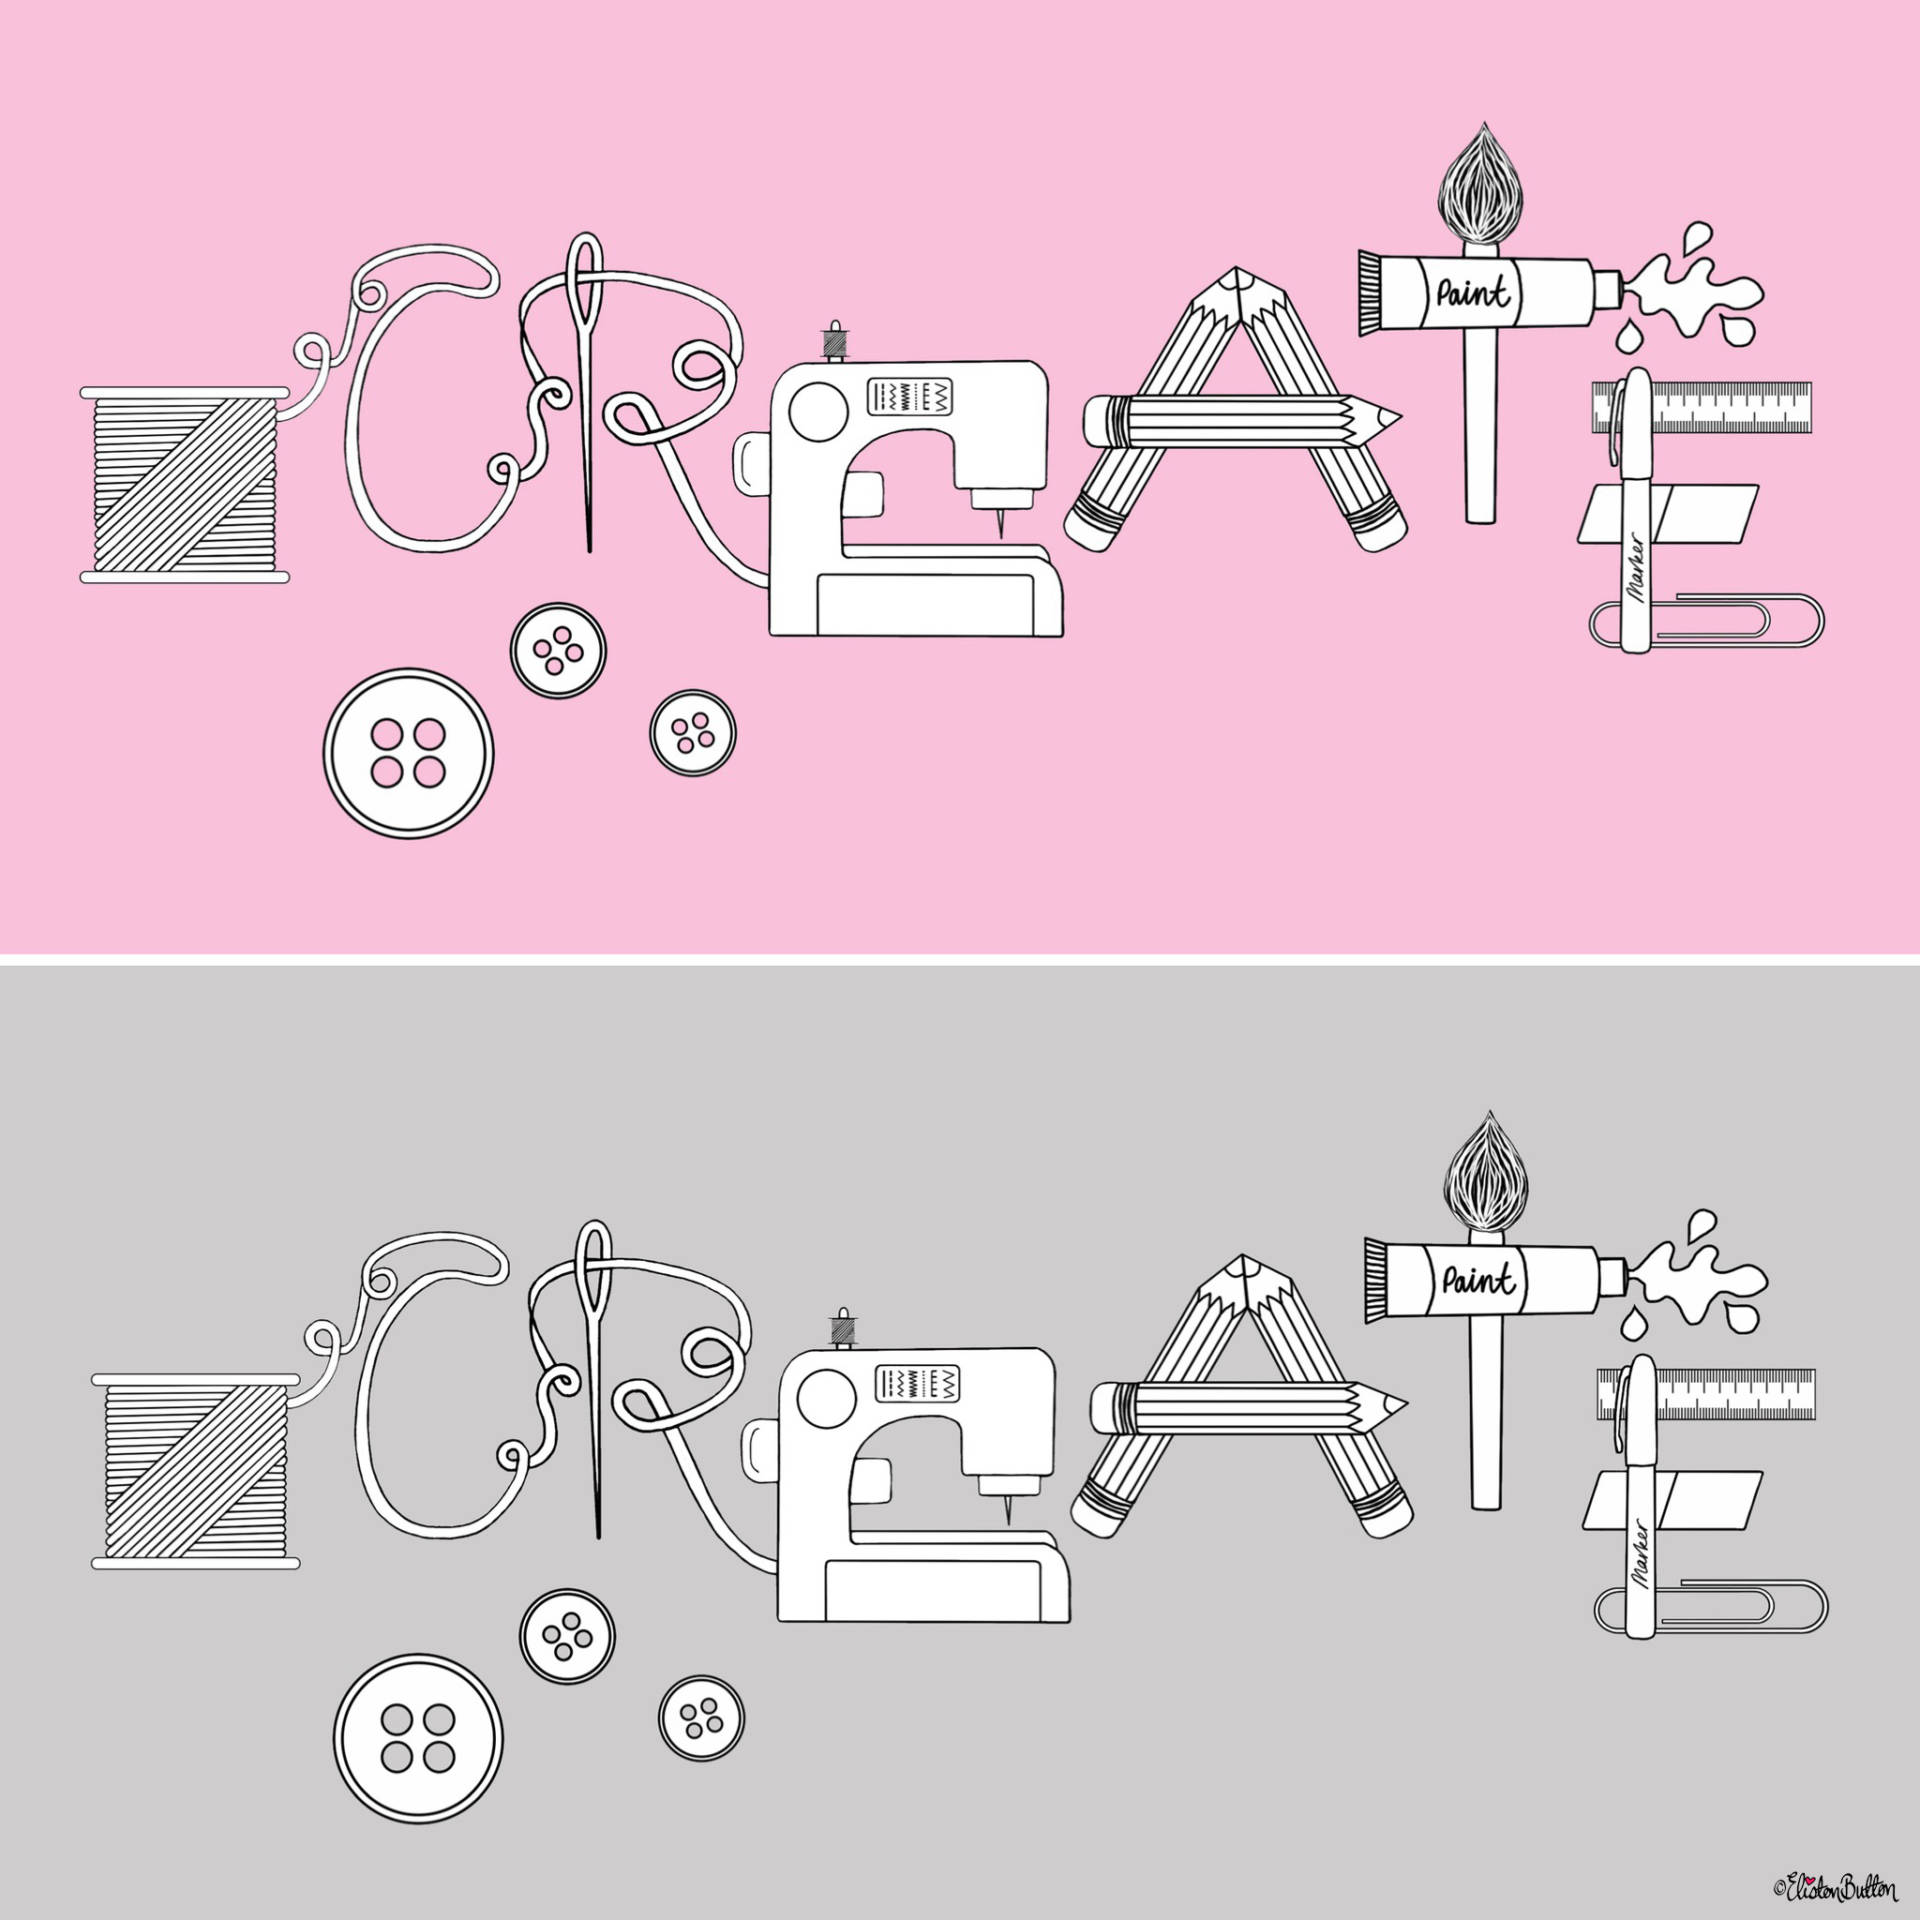 Pink and Grey Versions - Illustrated Create Word Art Illustrated Crafter Print by Eliston Button - Eliston Button is Four! at www.elistonbutton.com - Eliston Button - That Crafty Kid – Art, Design, Craft & Adventure.